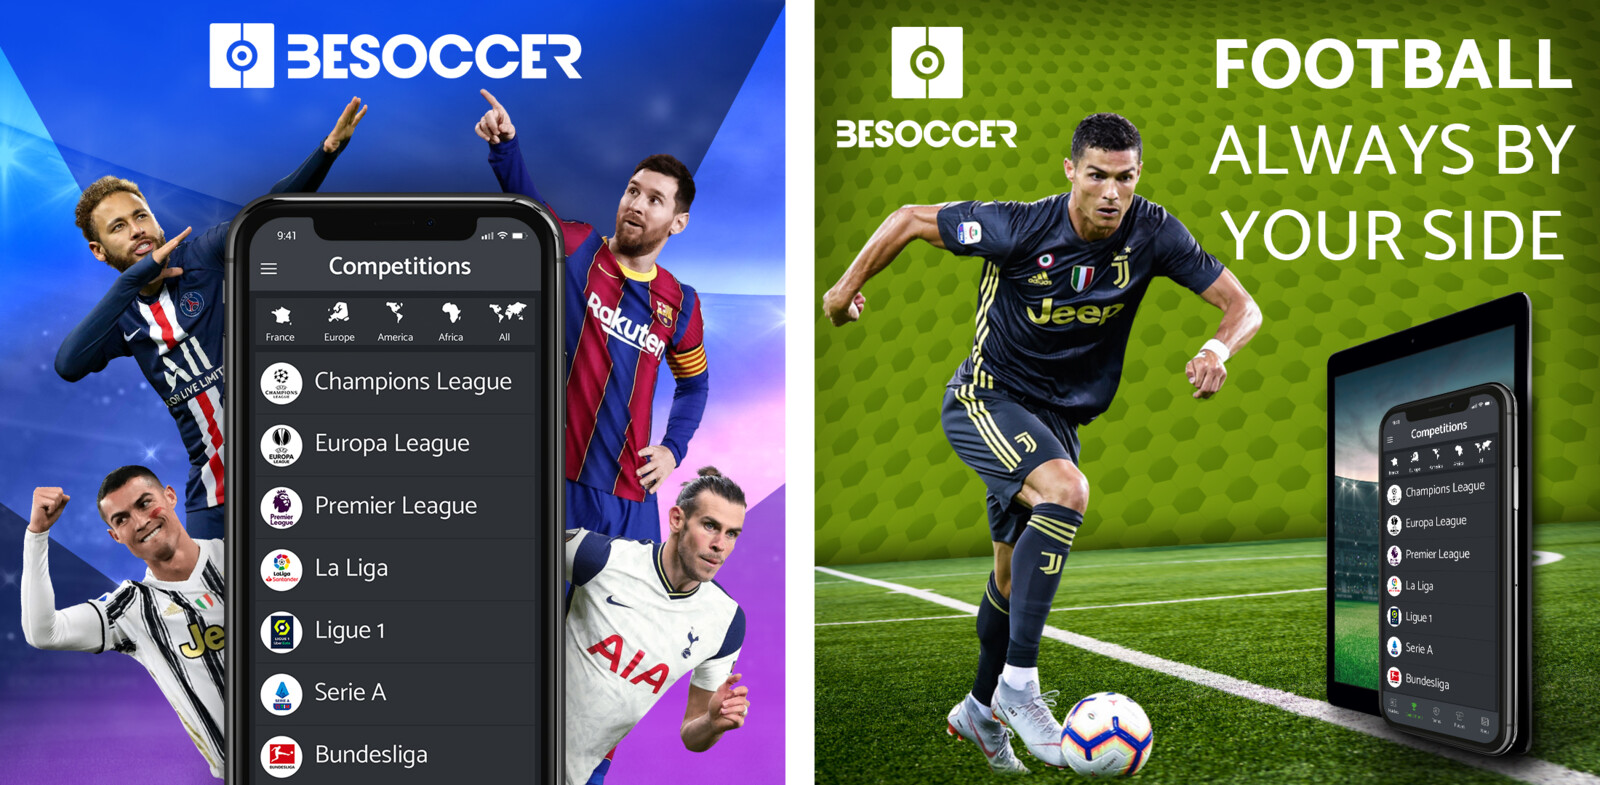 Static ads for Besoccer, a football app gathering match results and informations